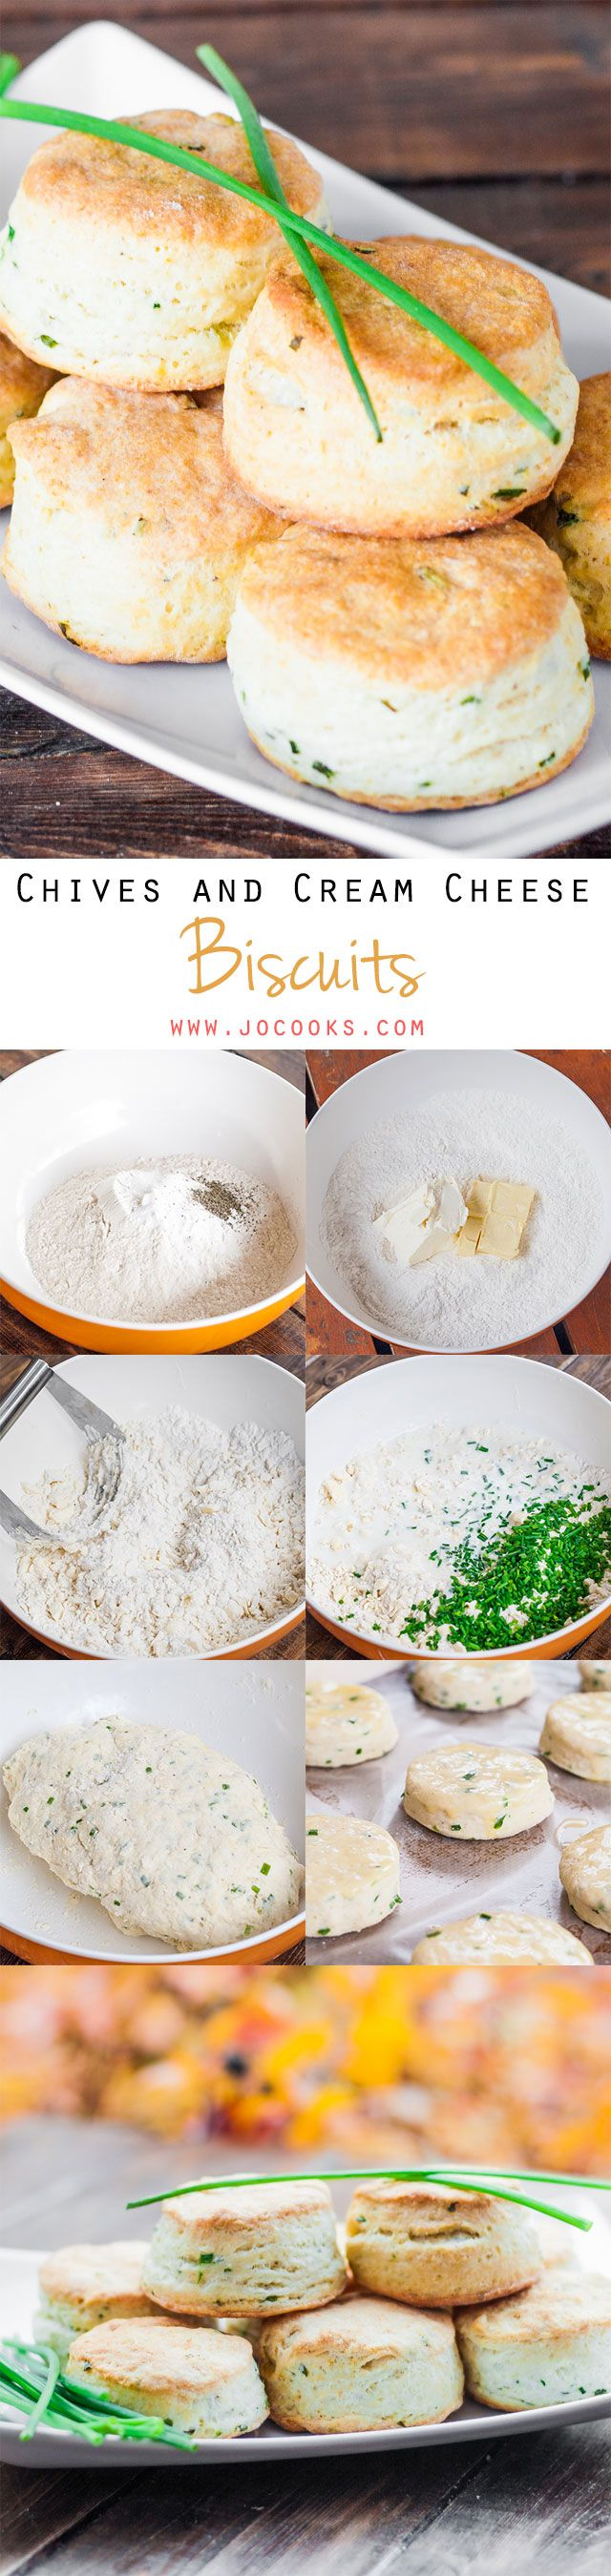 These Chives and Cream Cheese Biscuits are super flakey, buttery, and just delicious goodness.